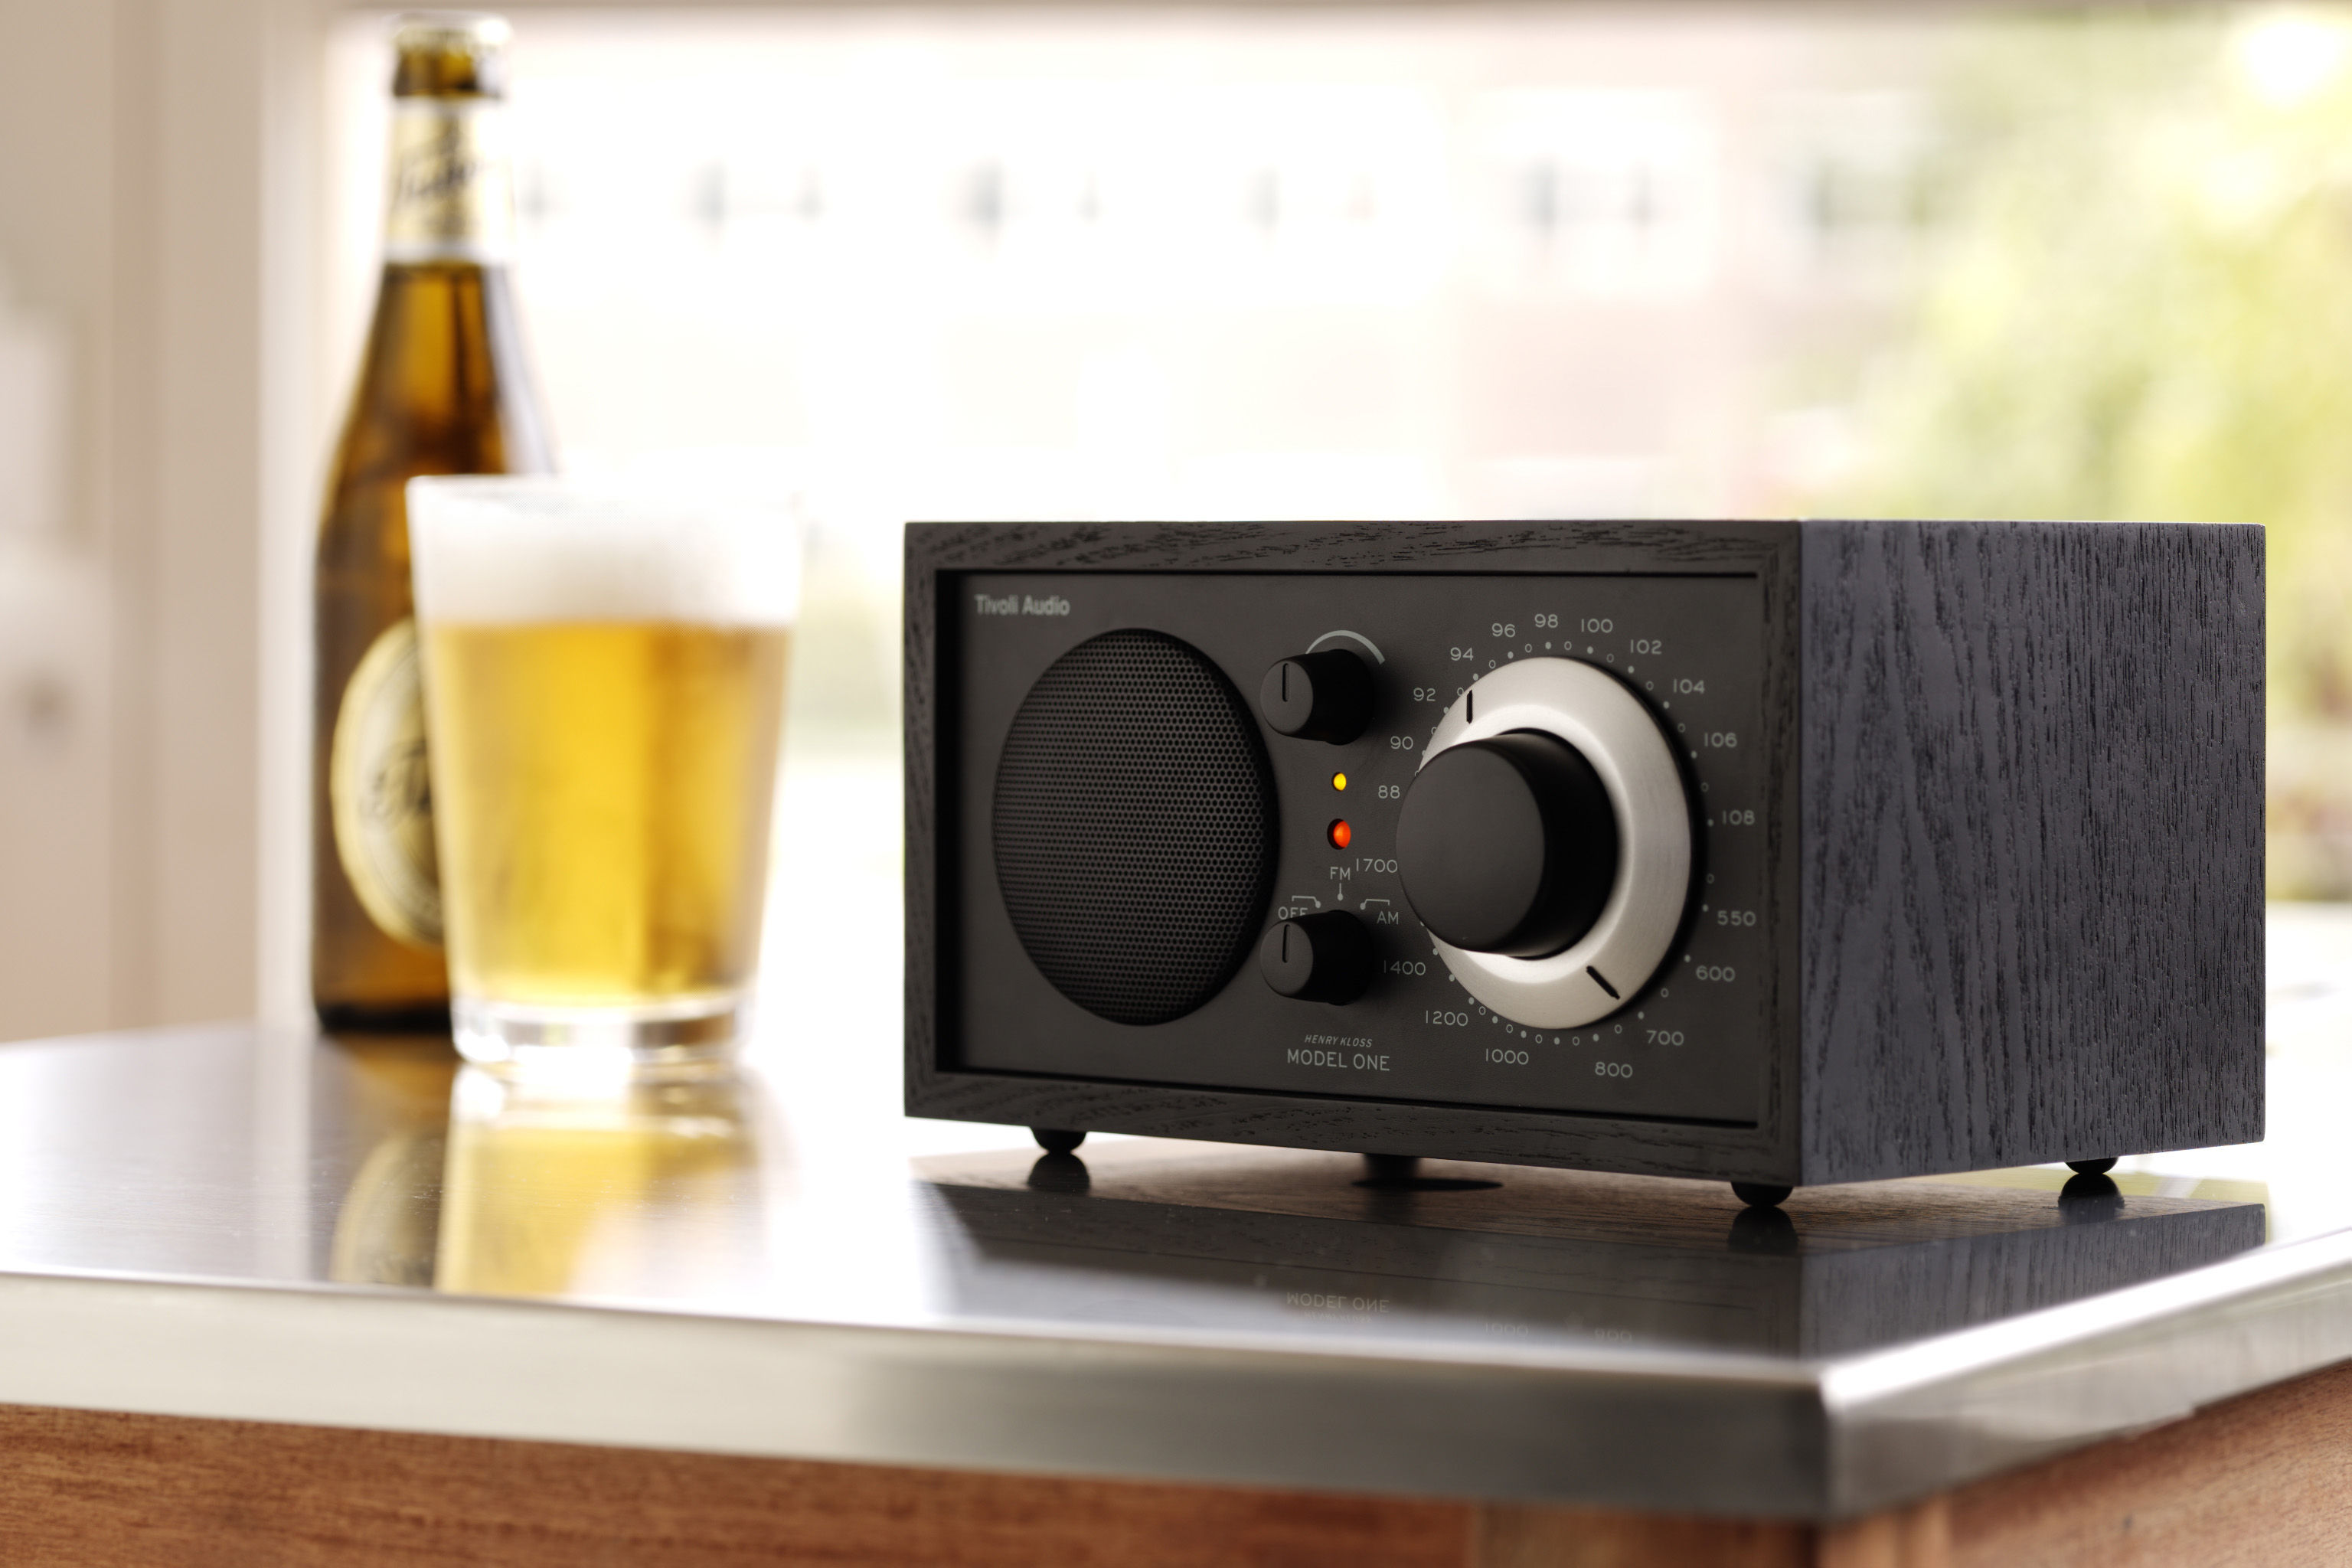 model one radio speaker compatible with ipod silver walnut by. Black Bedroom Furniture Sets. Home Design Ideas